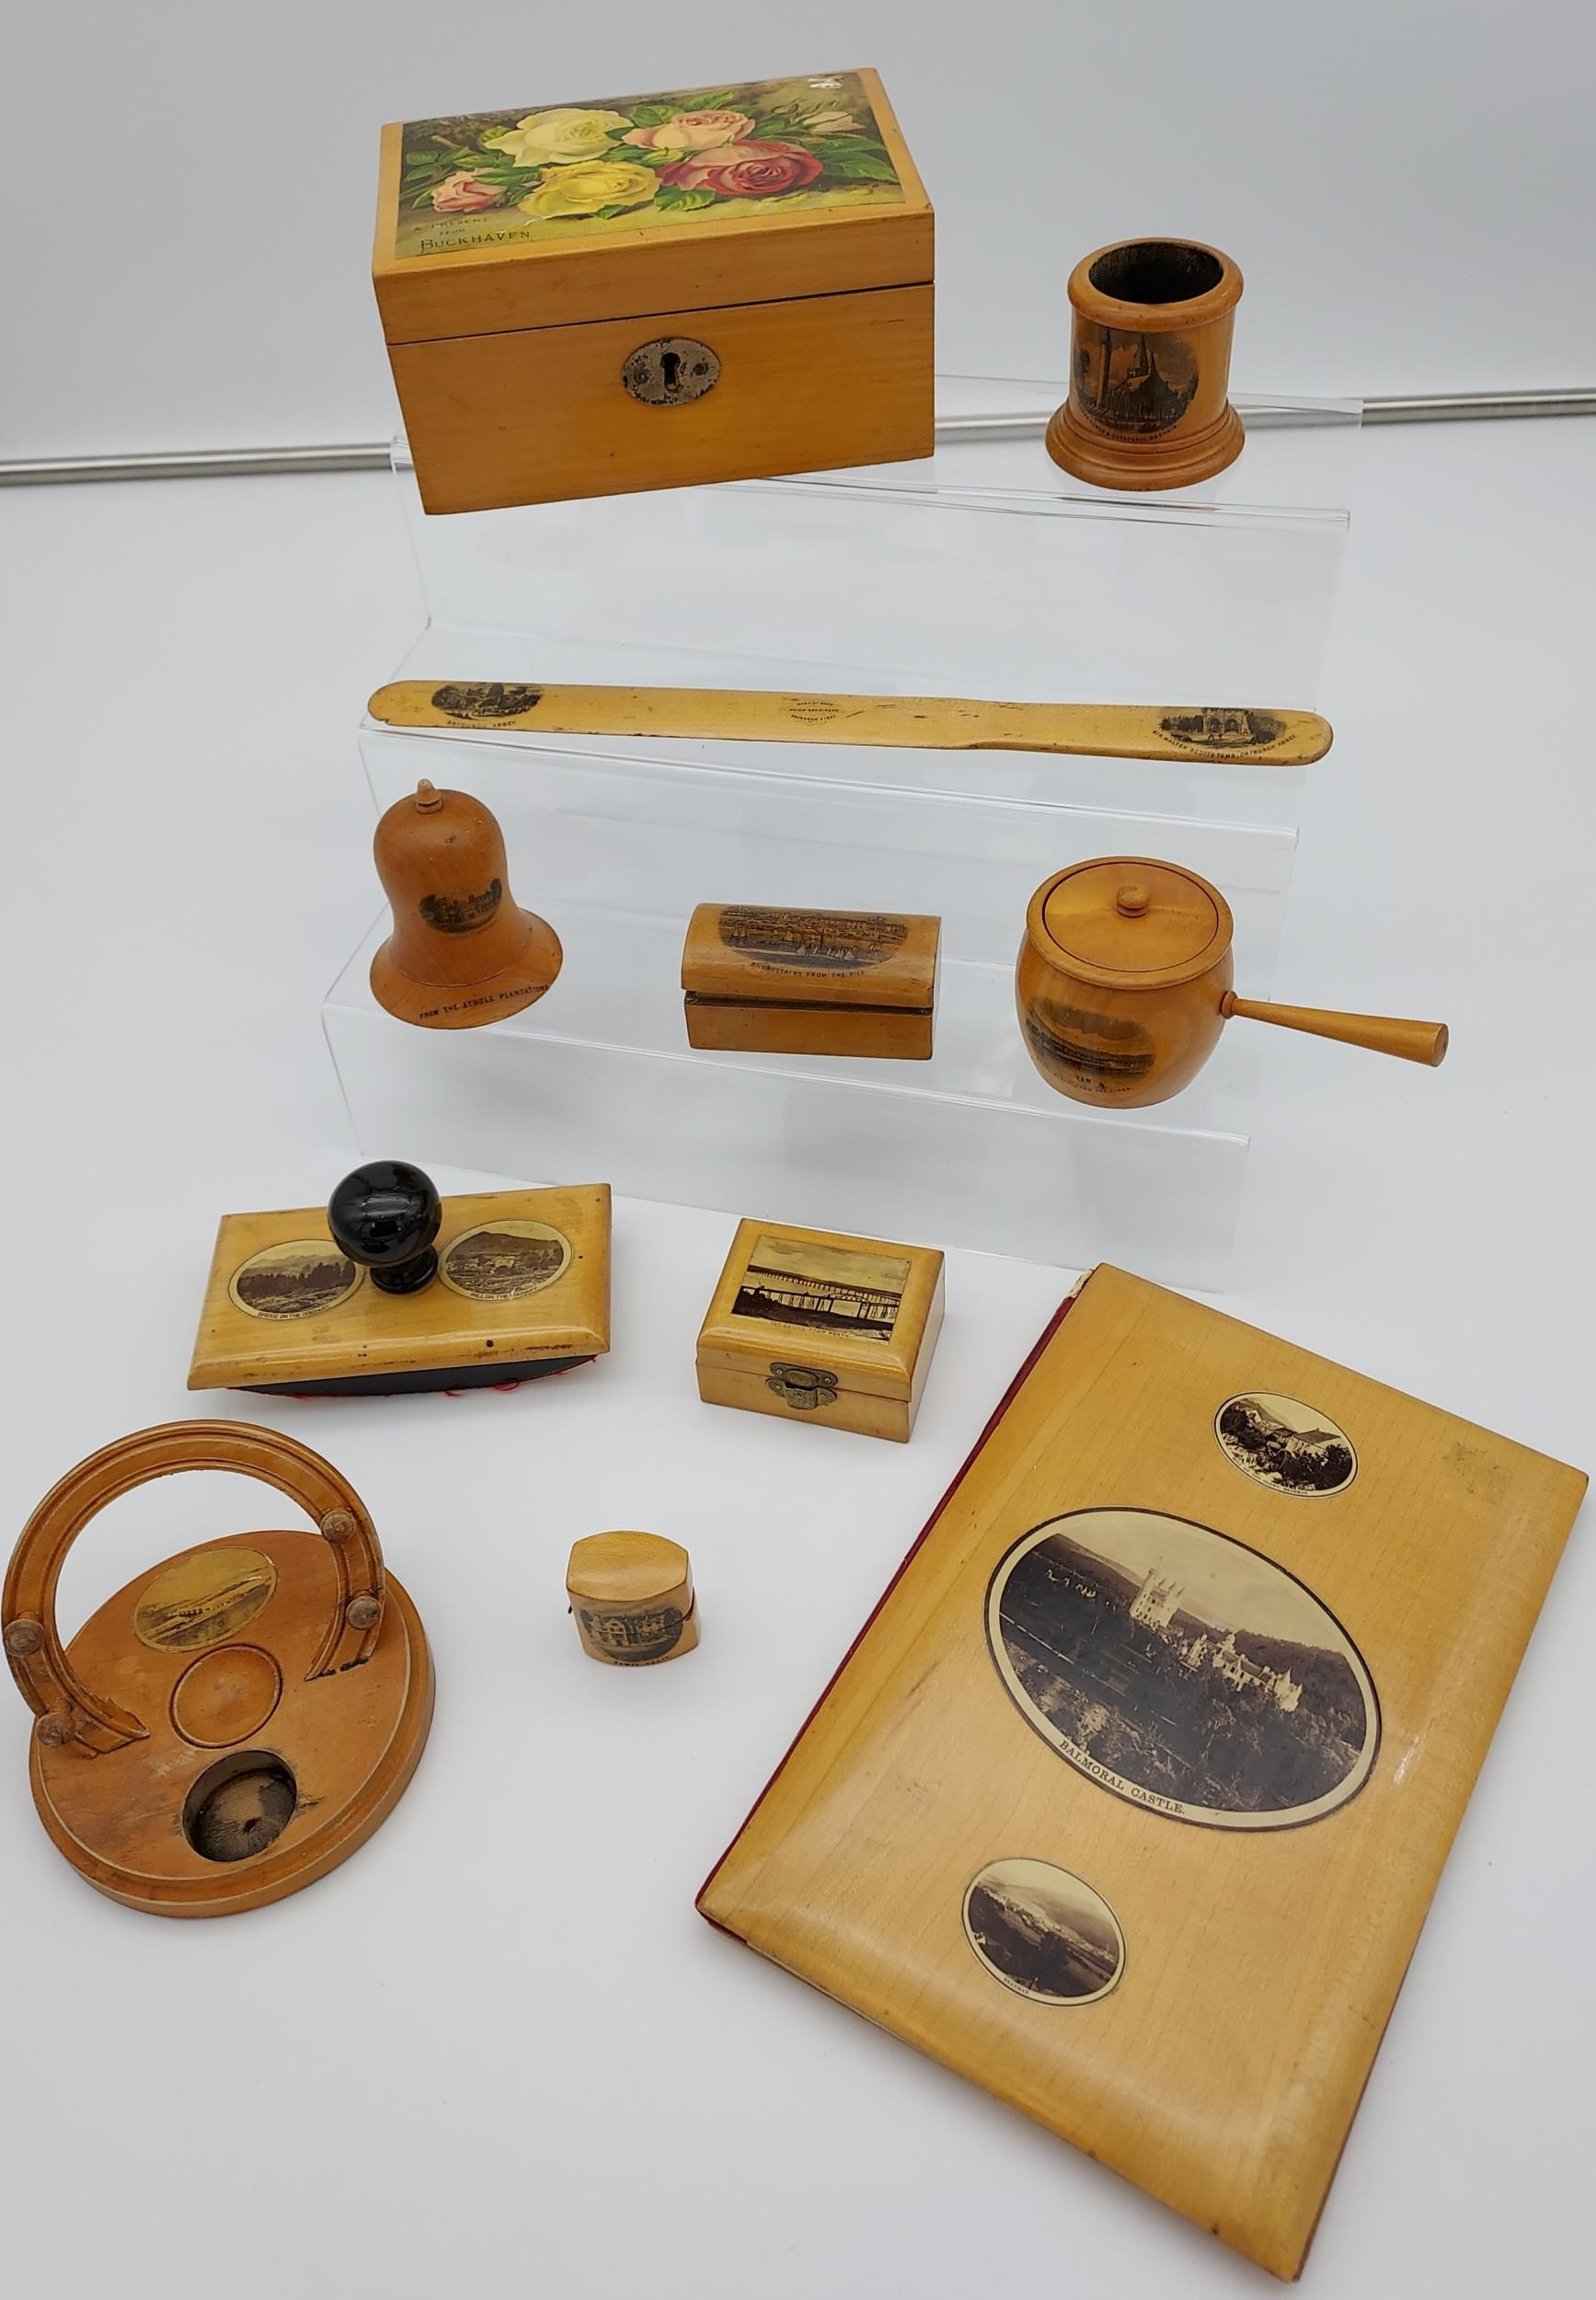 A Collection of 11 various pieces of Mauchline ware which includes Ring box, Blotter, Horse shaped